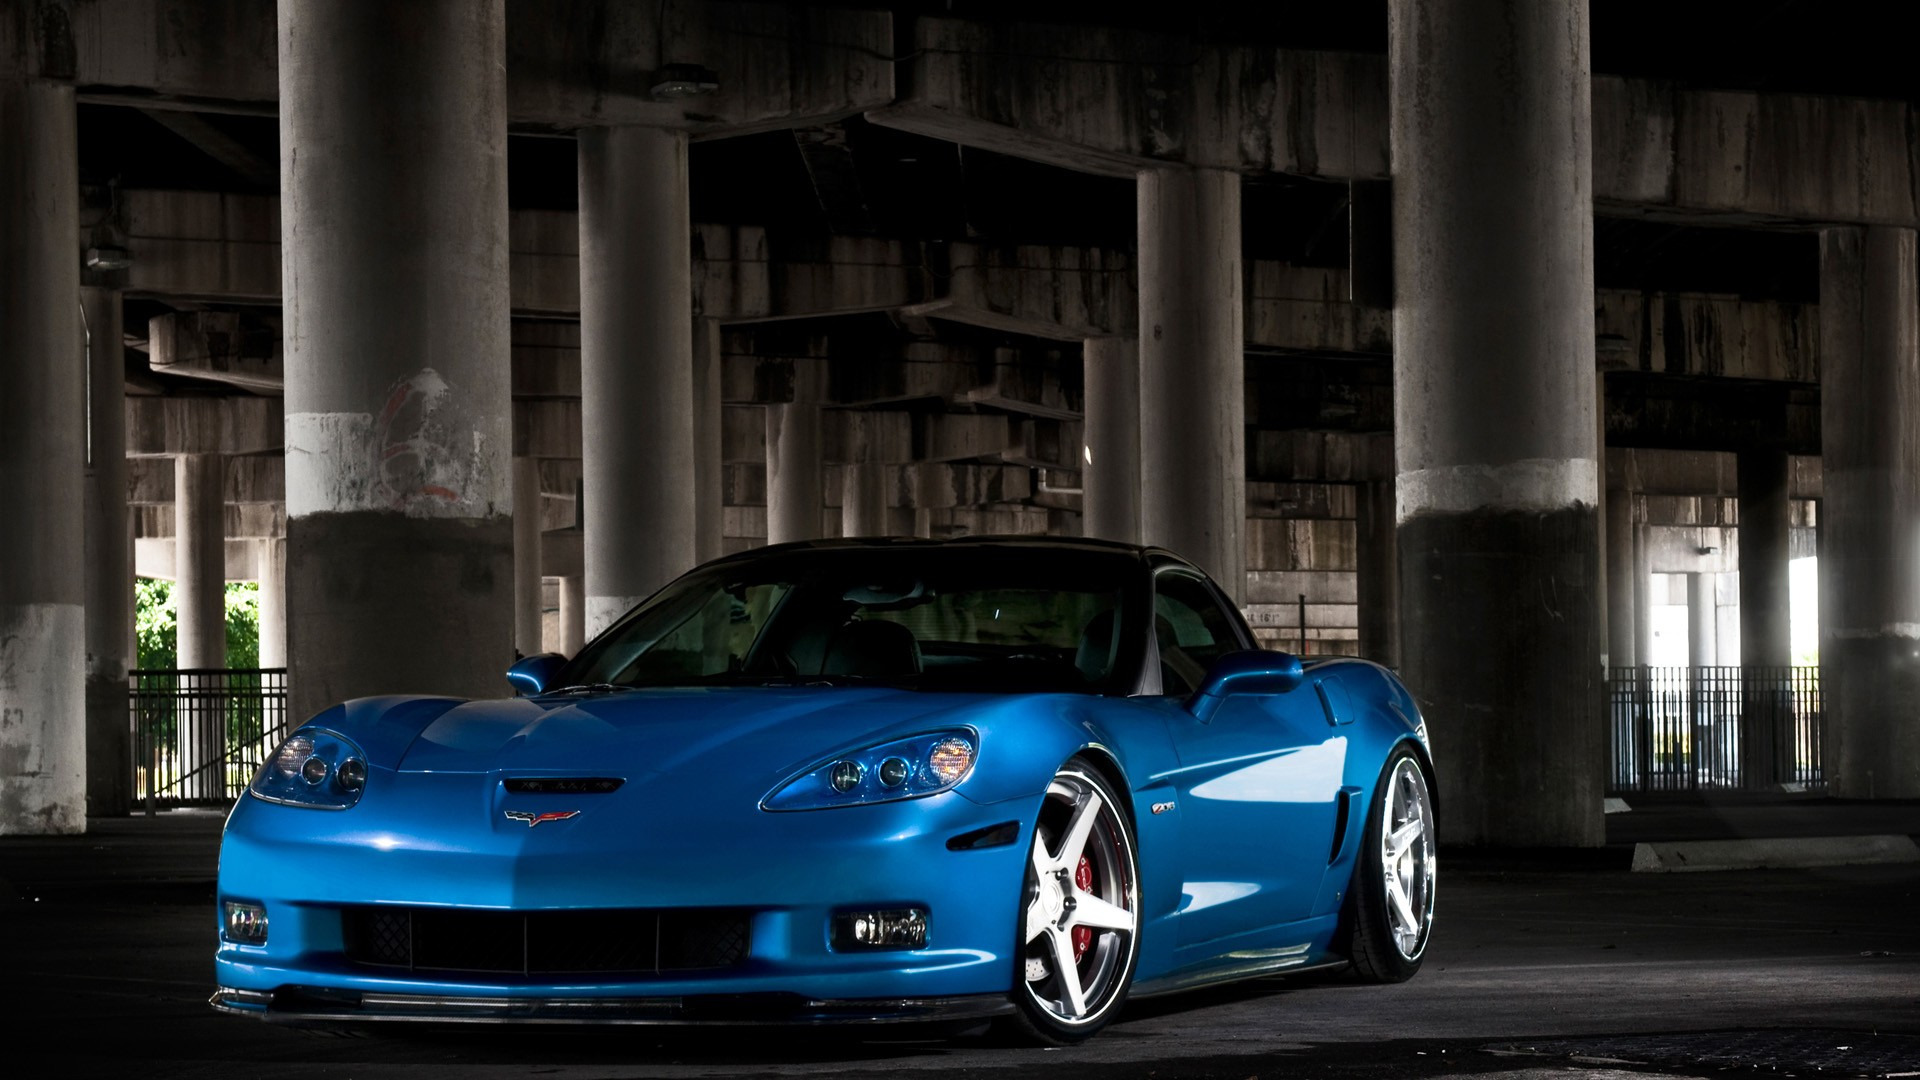 Cute Hd Wallpaper For Iphone 6 Chevrolet Corvette C6 Zr1 Car Wallpapers Hd Wallpapers